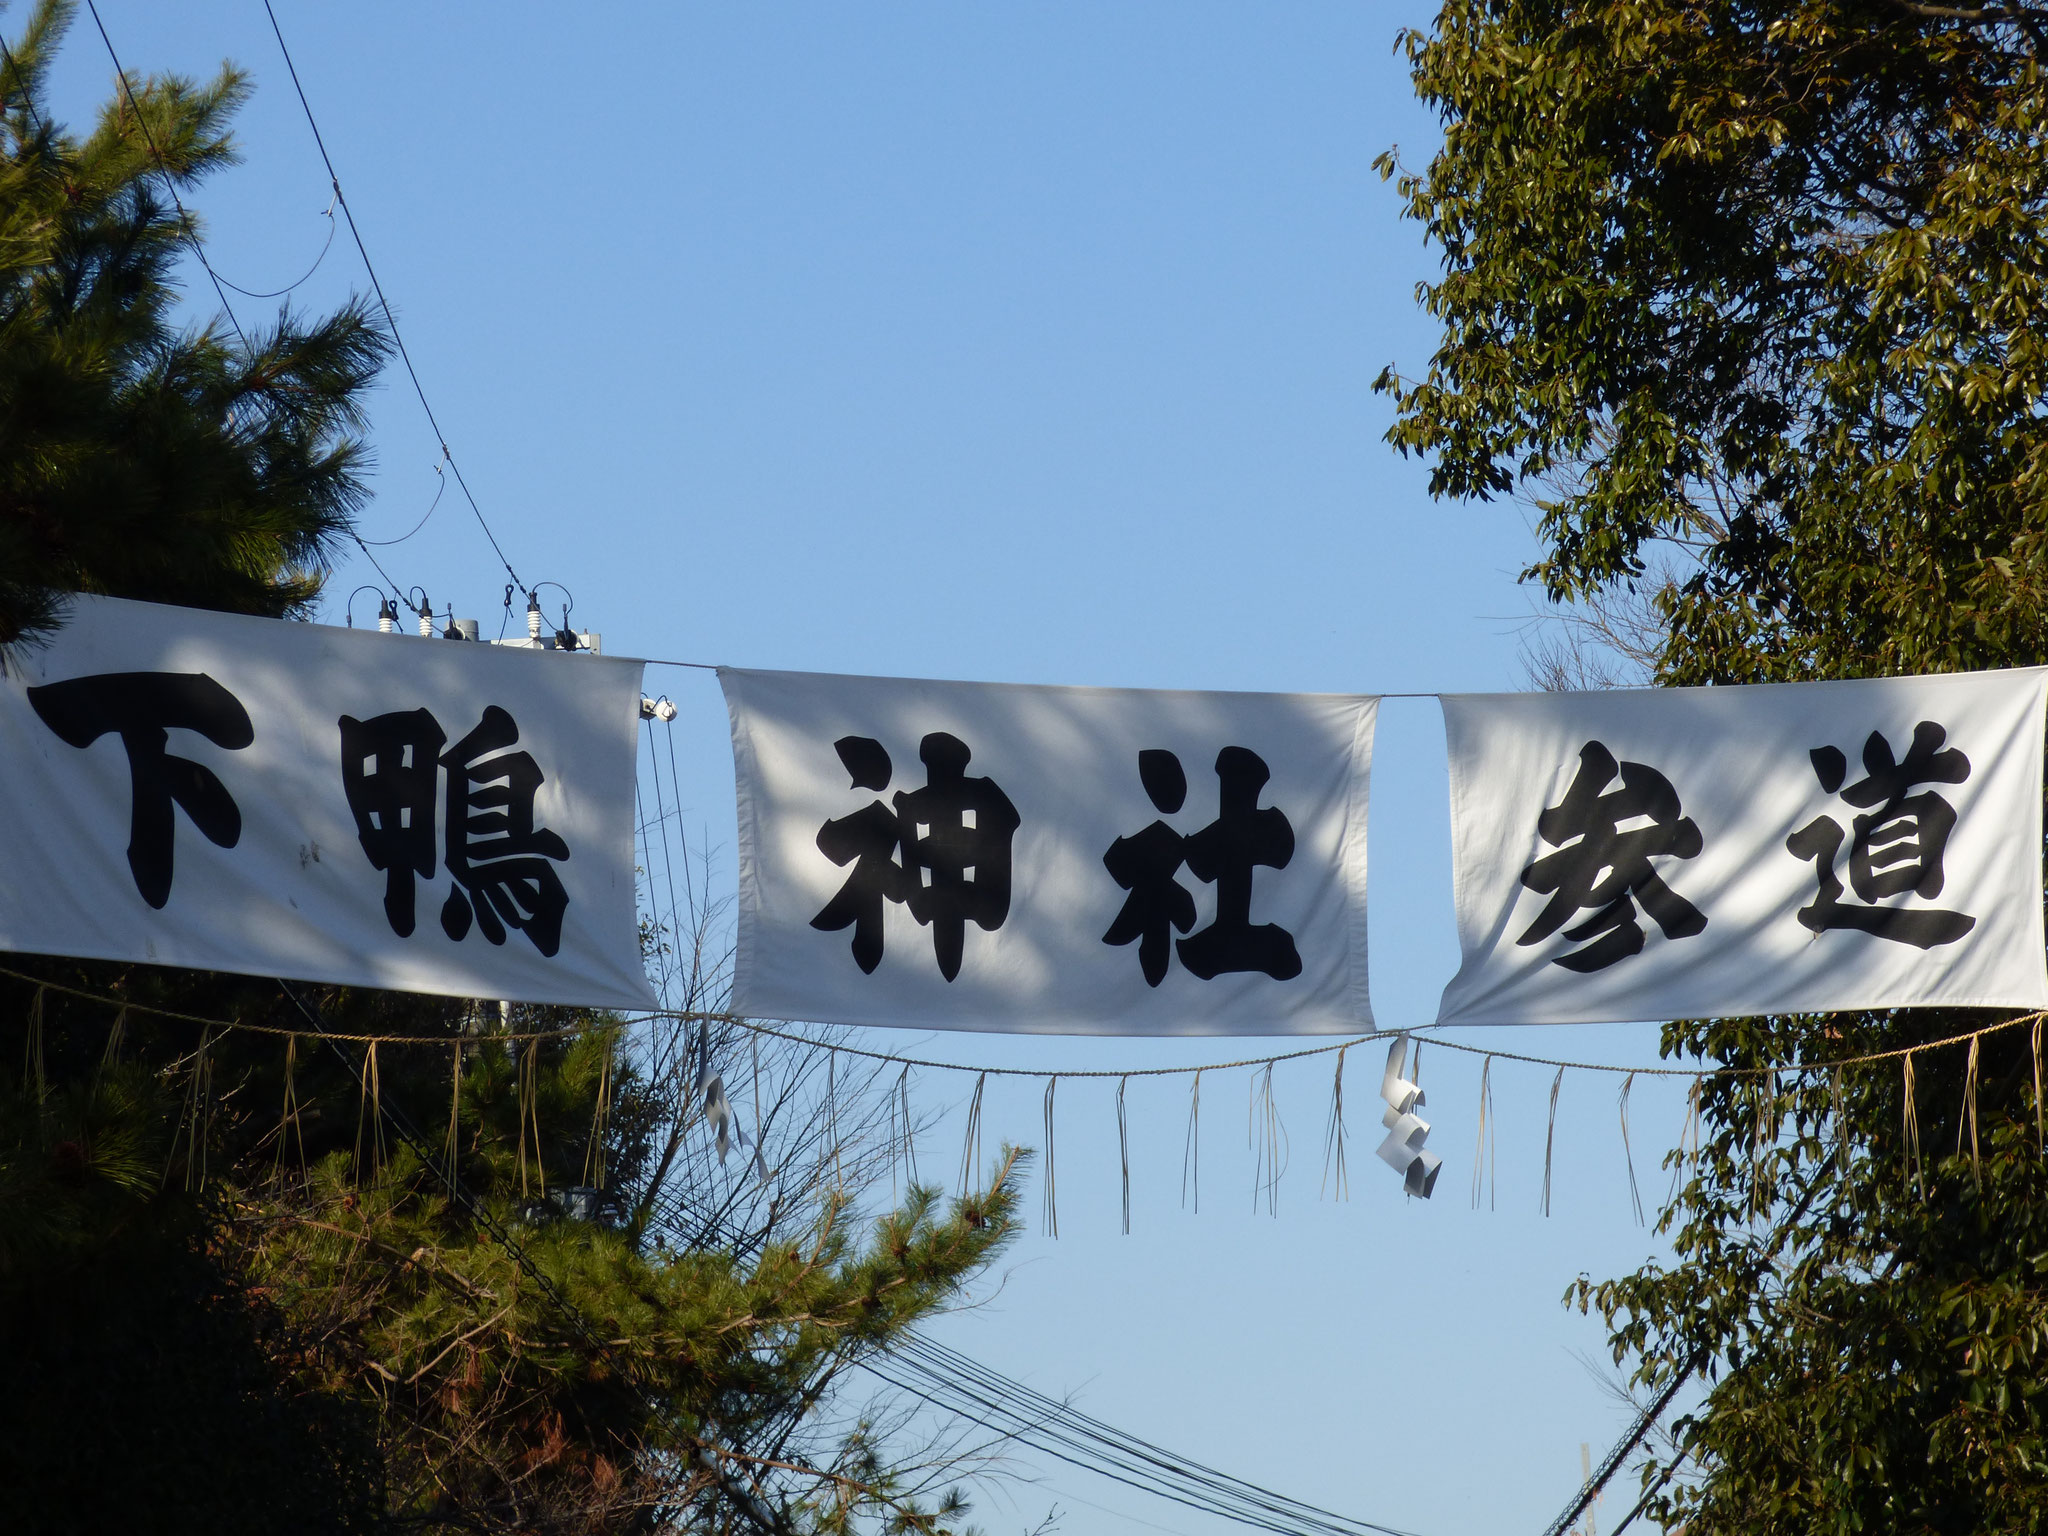 下鴨神社参道、入り口。Approach to a SIMOGAMO JINJYA shrine